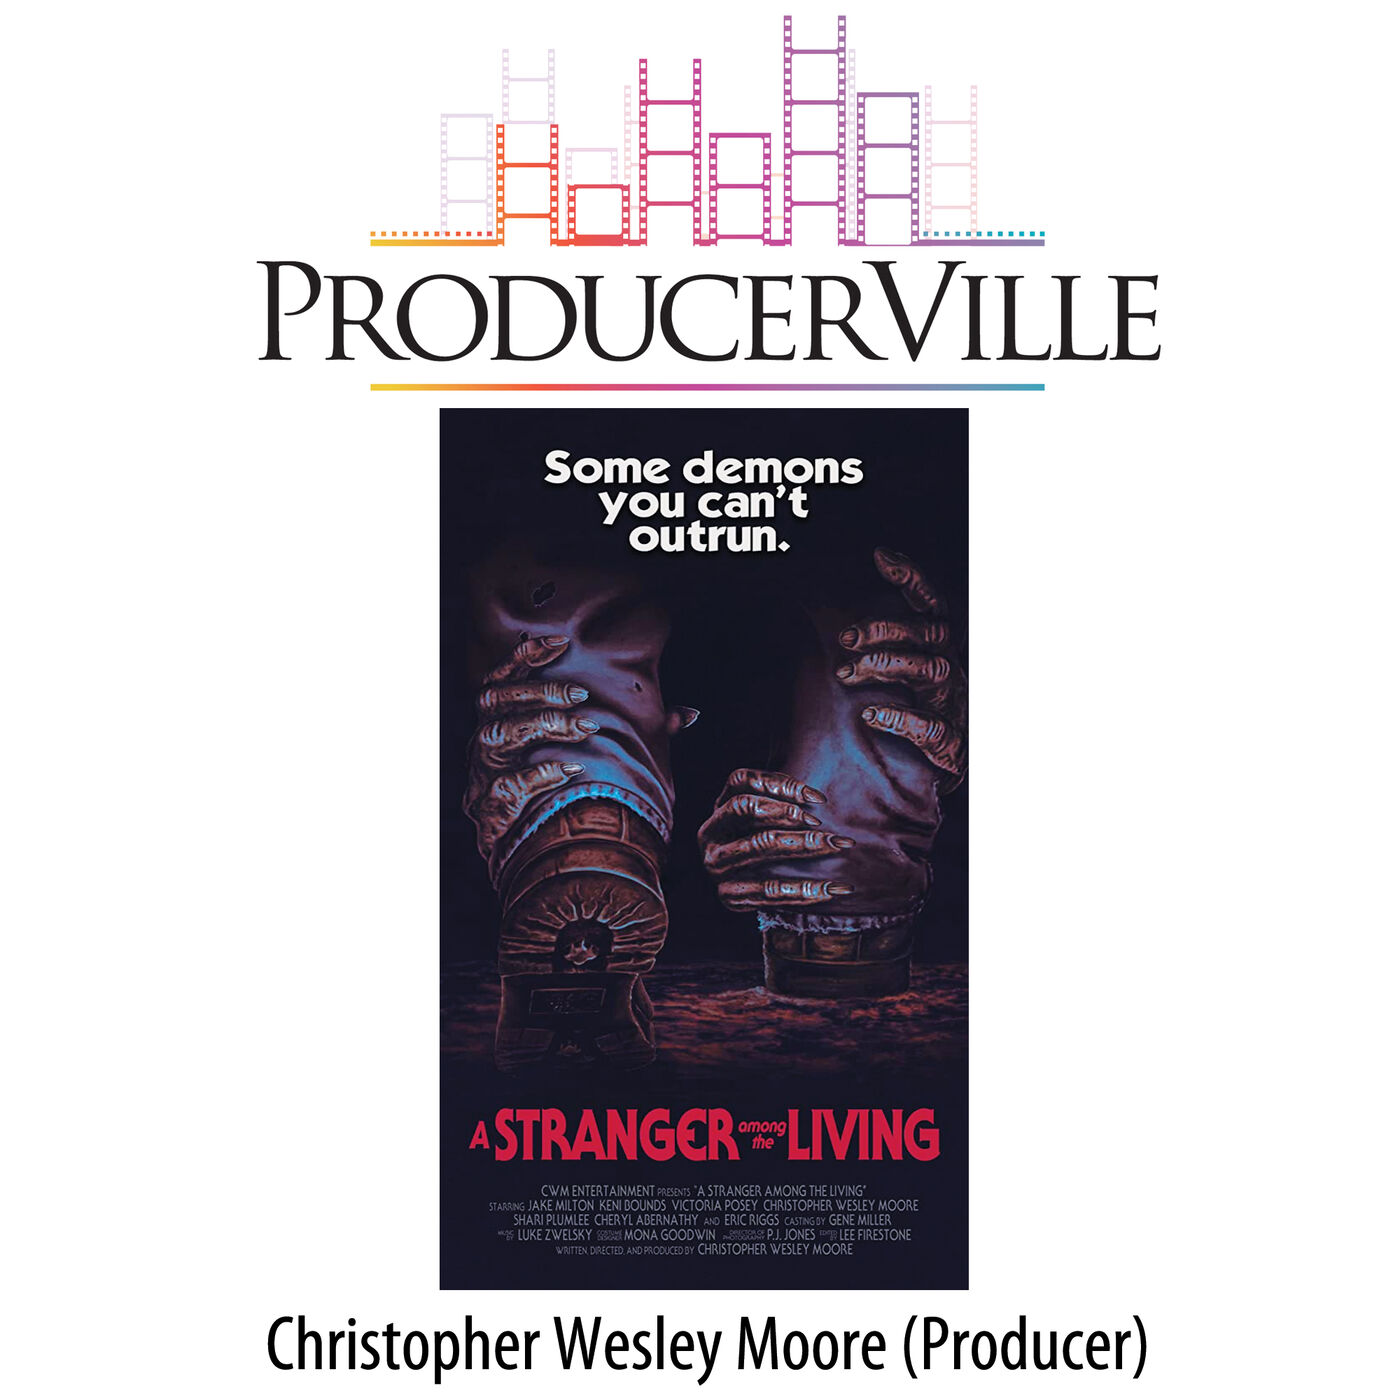 Christopher Wesley Moore (A STRANGER AMONG THE LIVING)